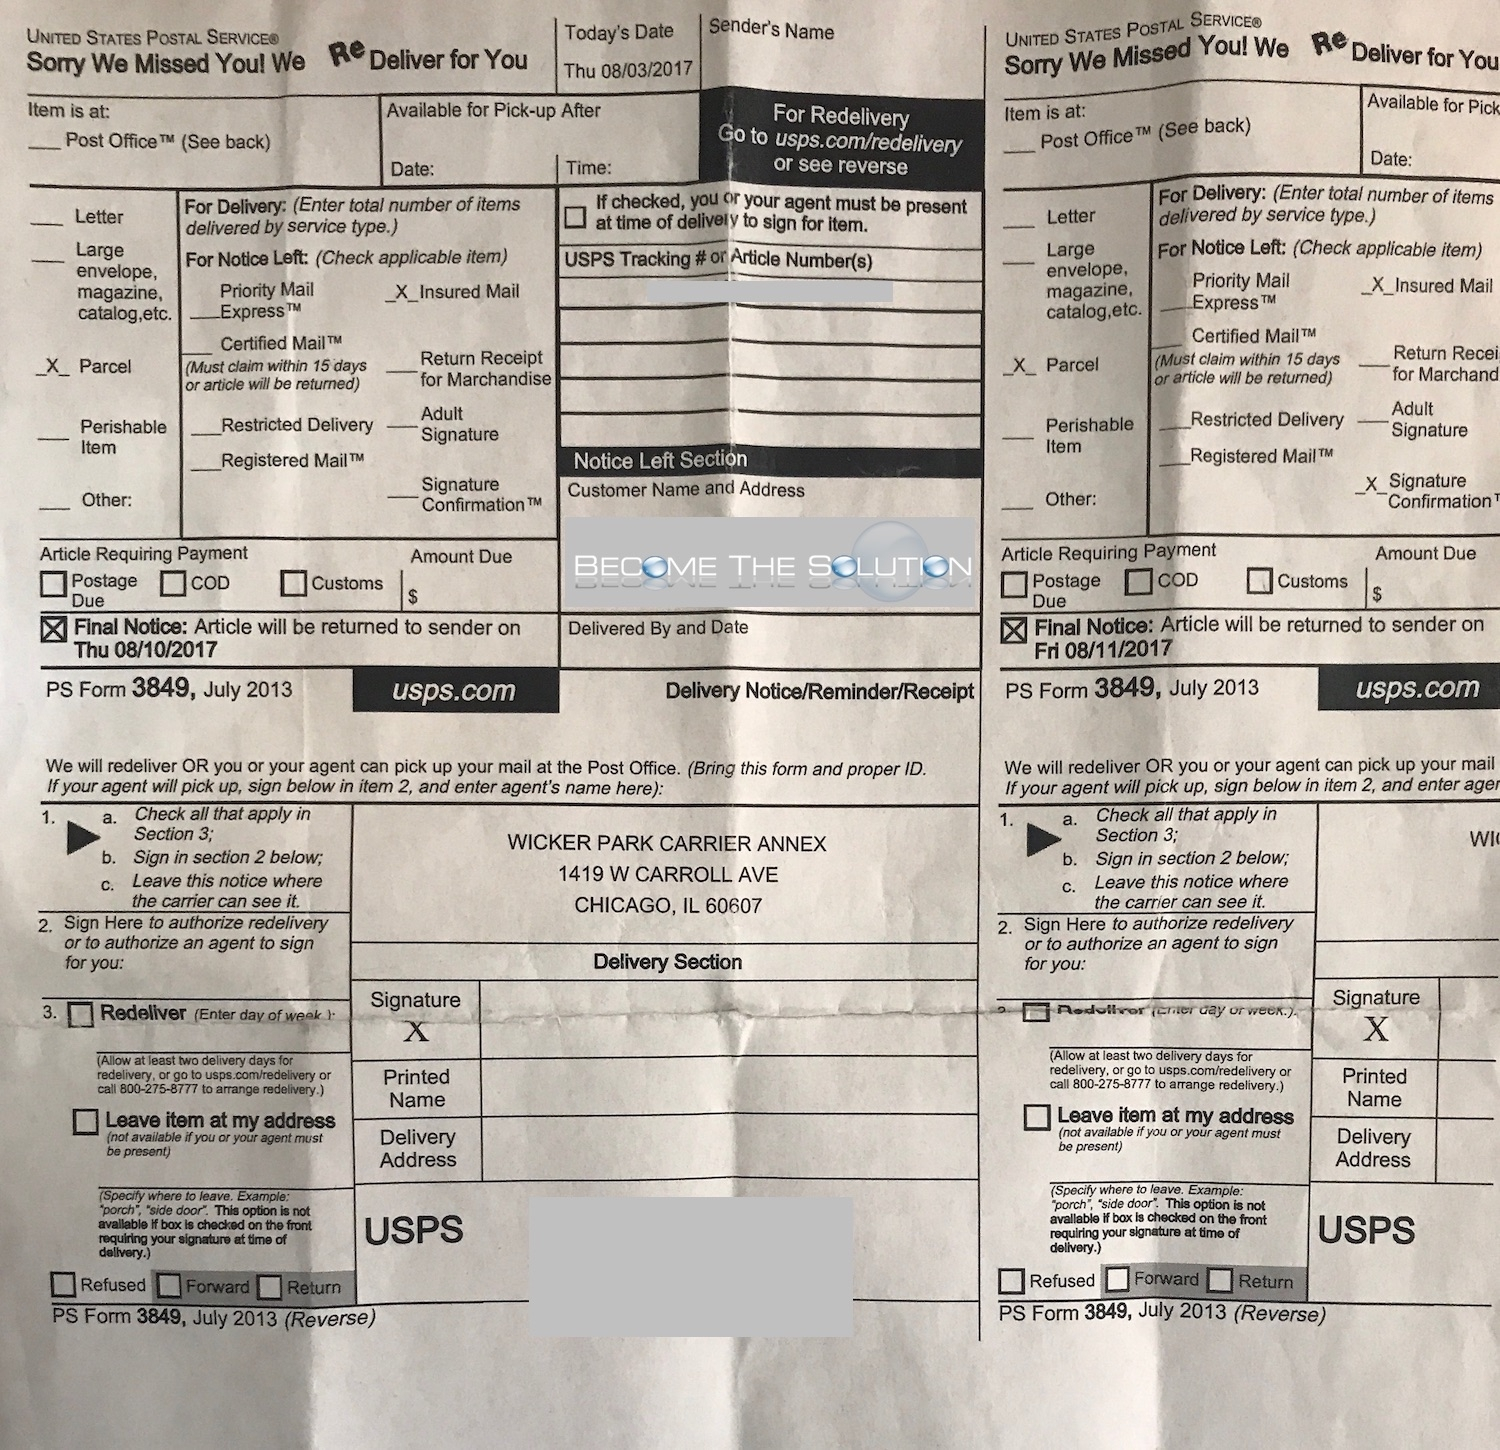 USPS Form 3849 Notice Left Section In Mailbox